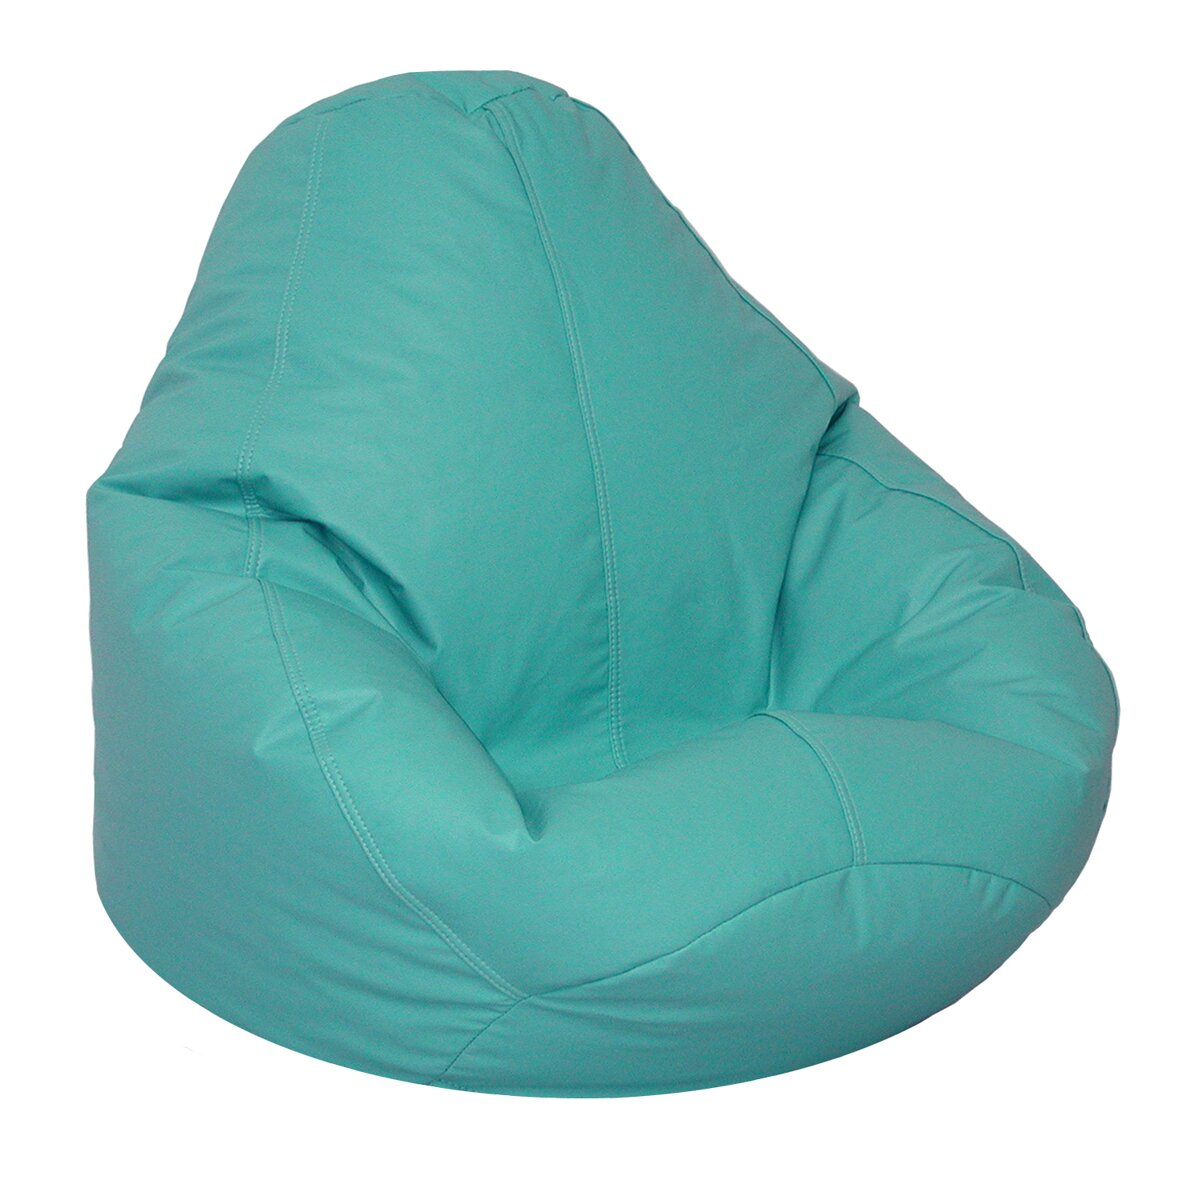 Elite Products Lifestyle Bean Bag Lounger & Reviews